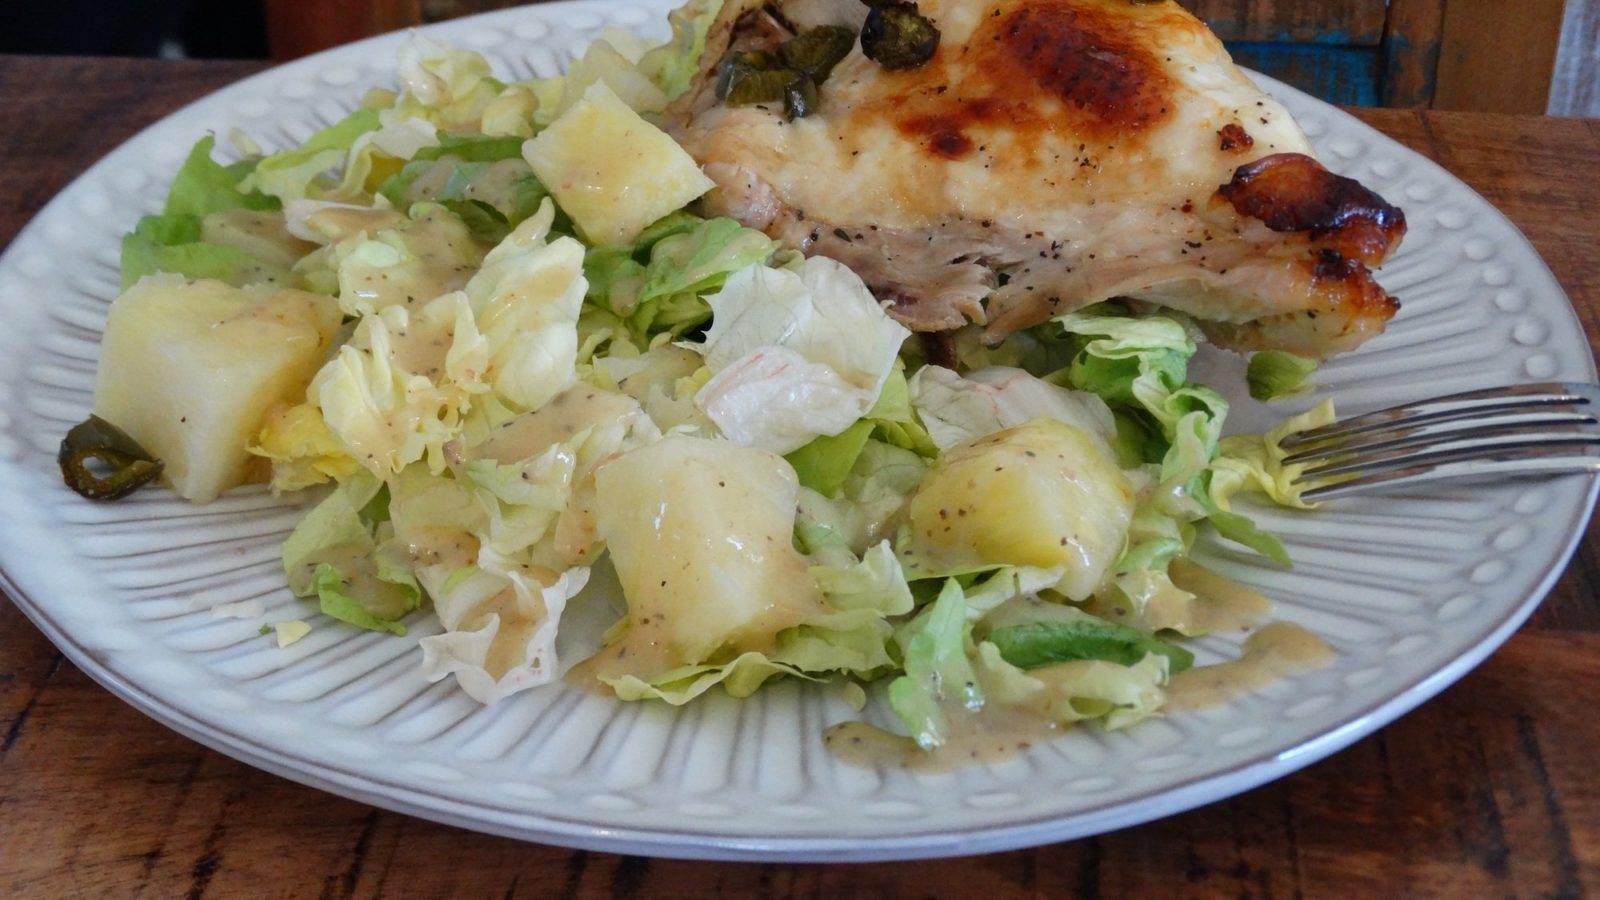 Caribbean Chicken Recipe - Use A Meat thermometer! 1